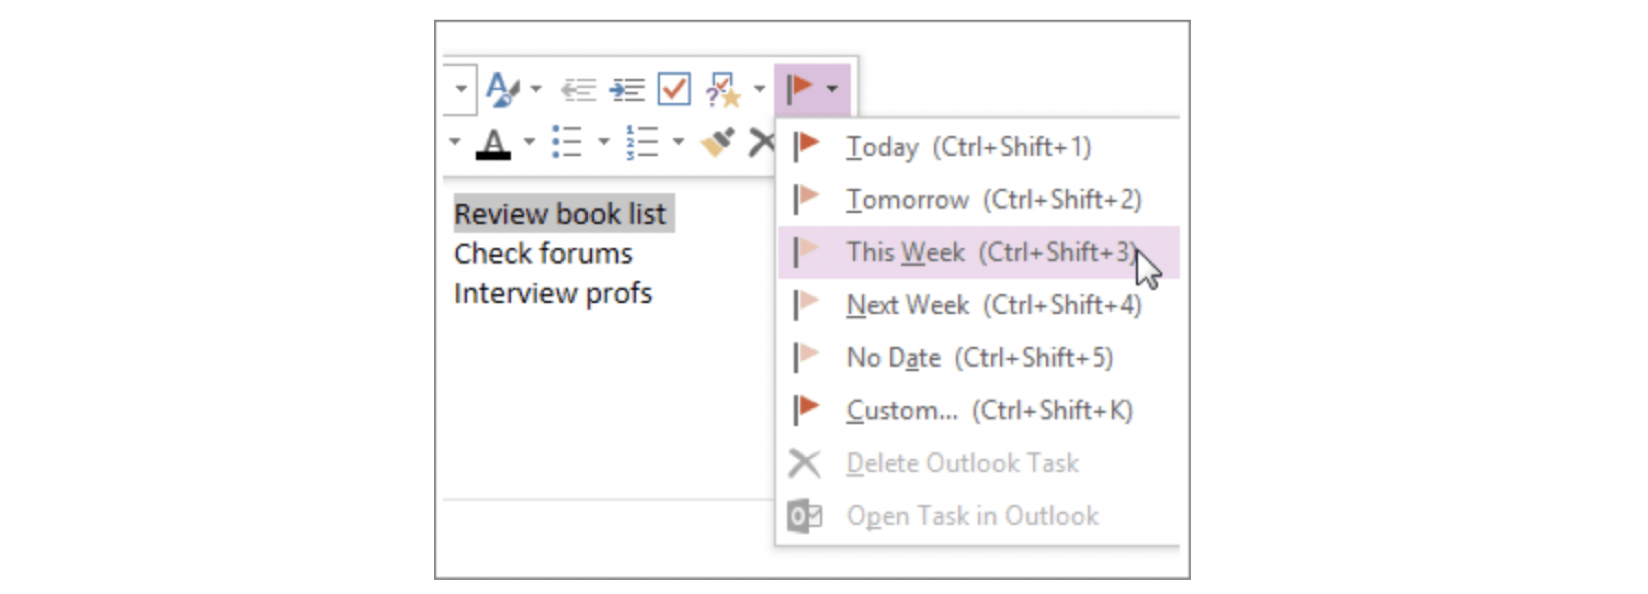 Cheat Sheet: Outlook, OneNote, To-Do, or Sticky Notes? Microsoft's note-taking apps explained OnMSFT.com January 18, 2019